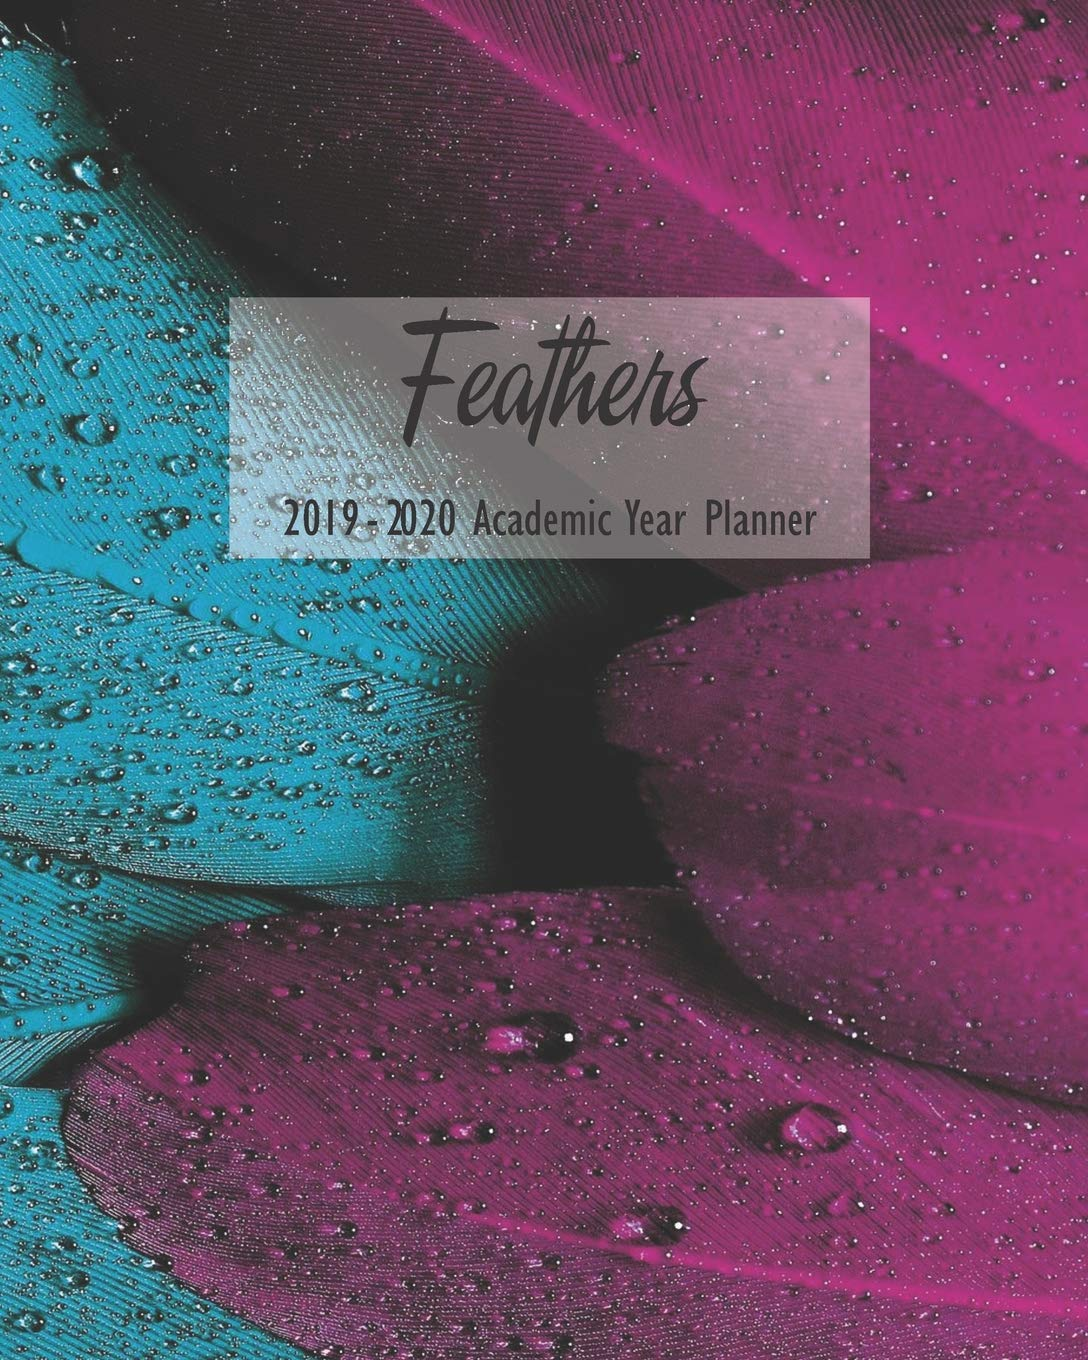 Feathers 2019 - 2020 Academic Year Planner: Weekly Monthly ...